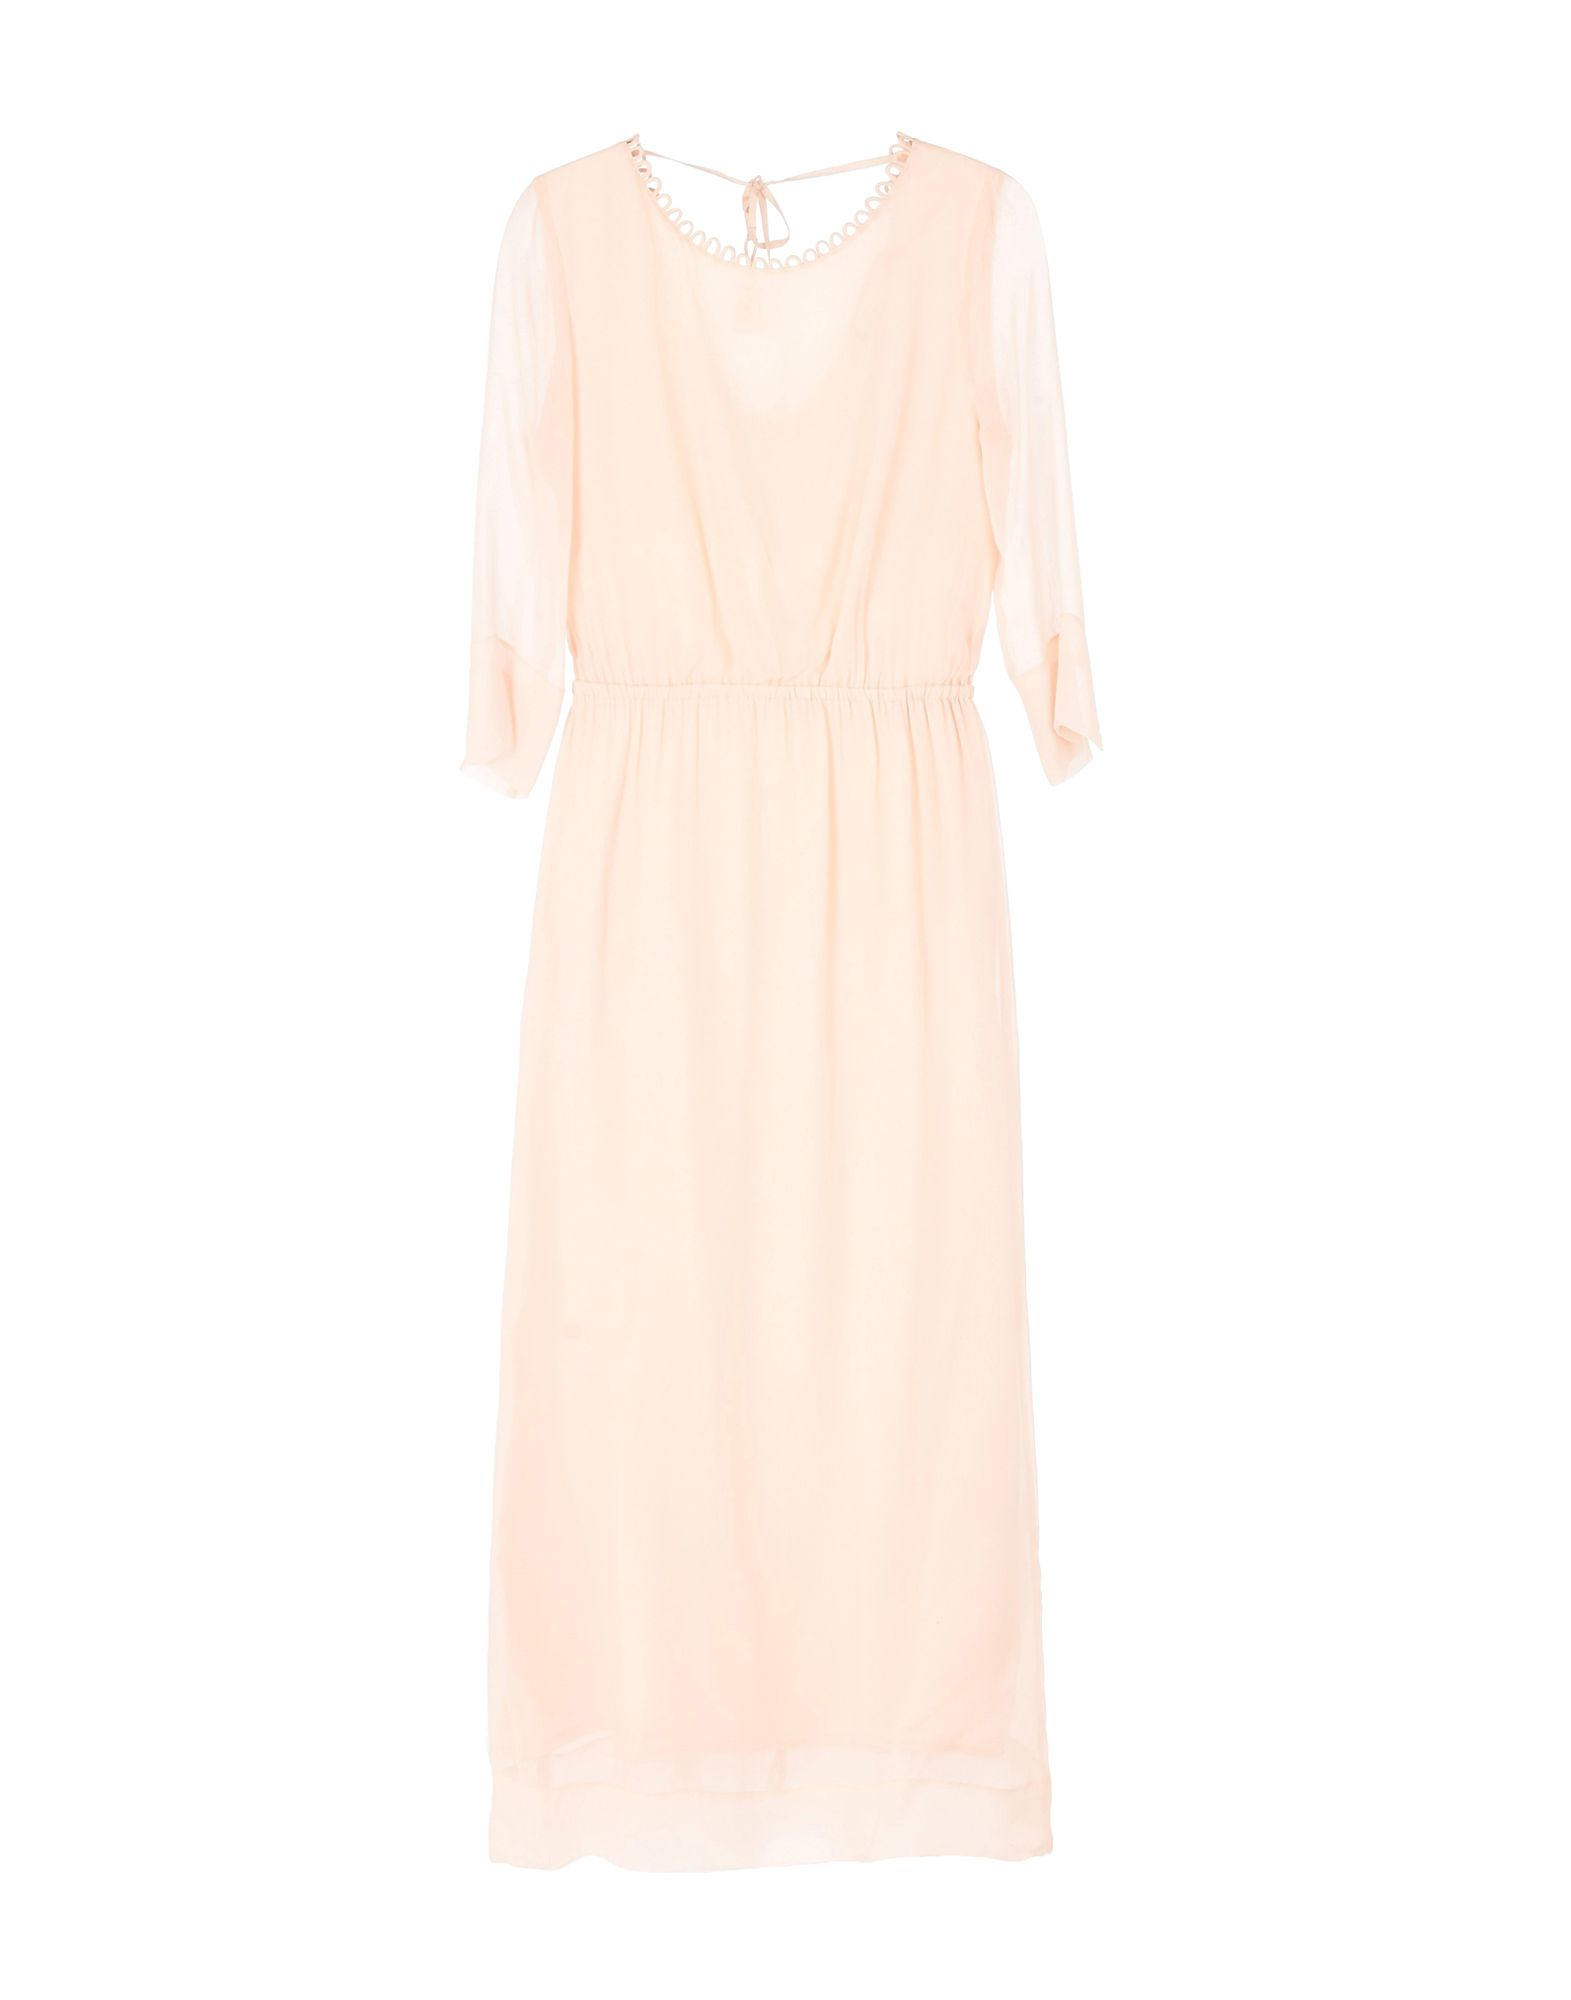 STELLA FOREST Long Dress in Pink